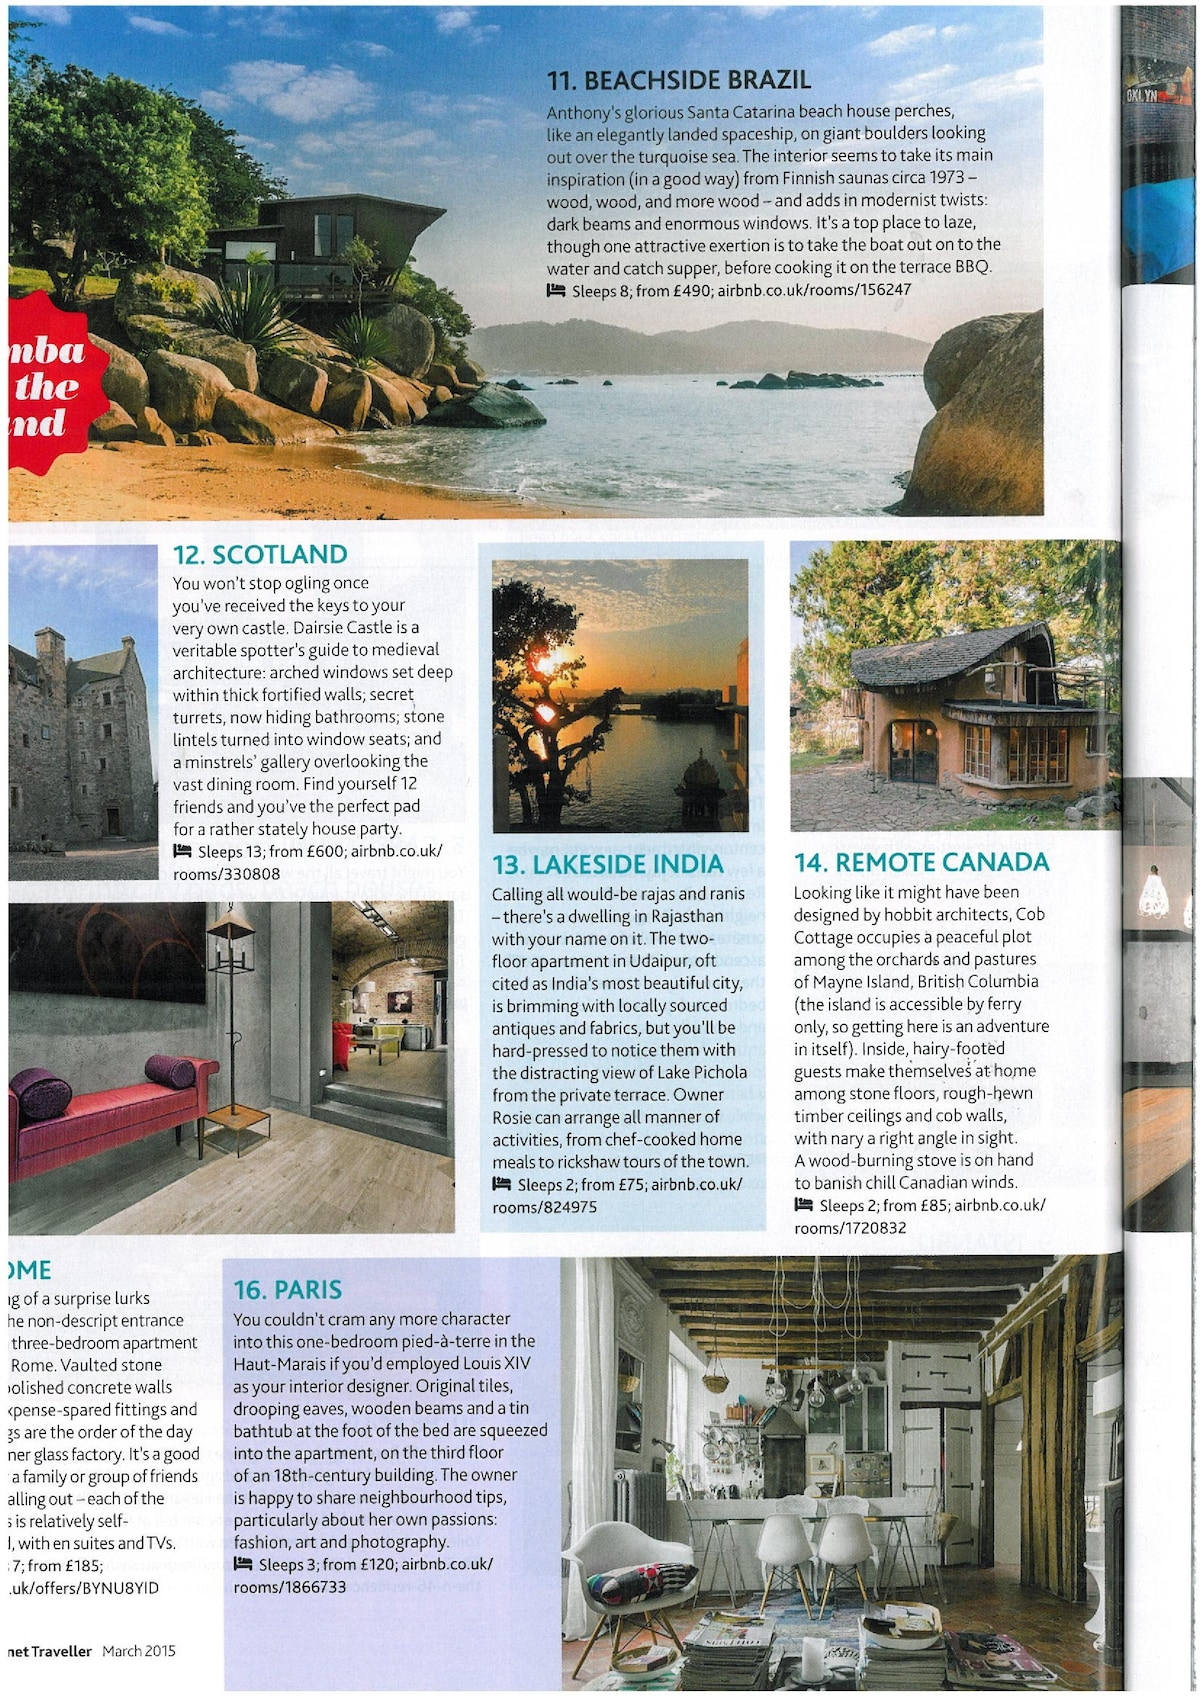 Lonely Planet magazine. March 2015.